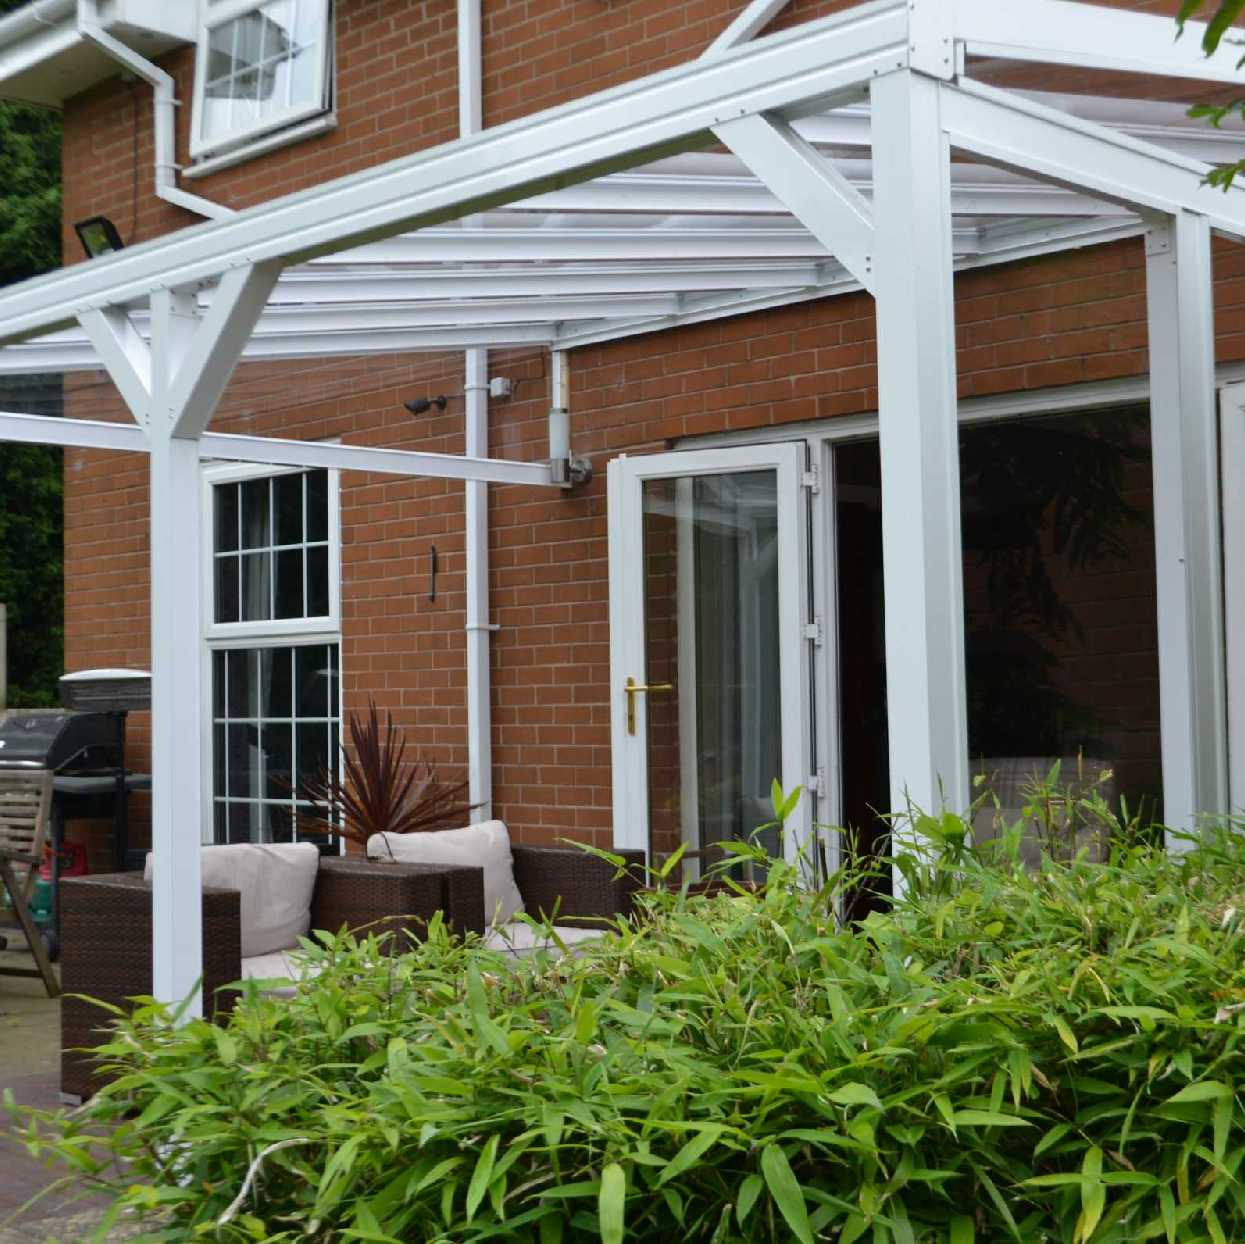 Omega Smart Lean-To Canopy with 6mm Glass Clear Plate Polycarbonate Glazing - 6.3m (W) x 1.5m (P), (4) Supporting Posts from Omega Build